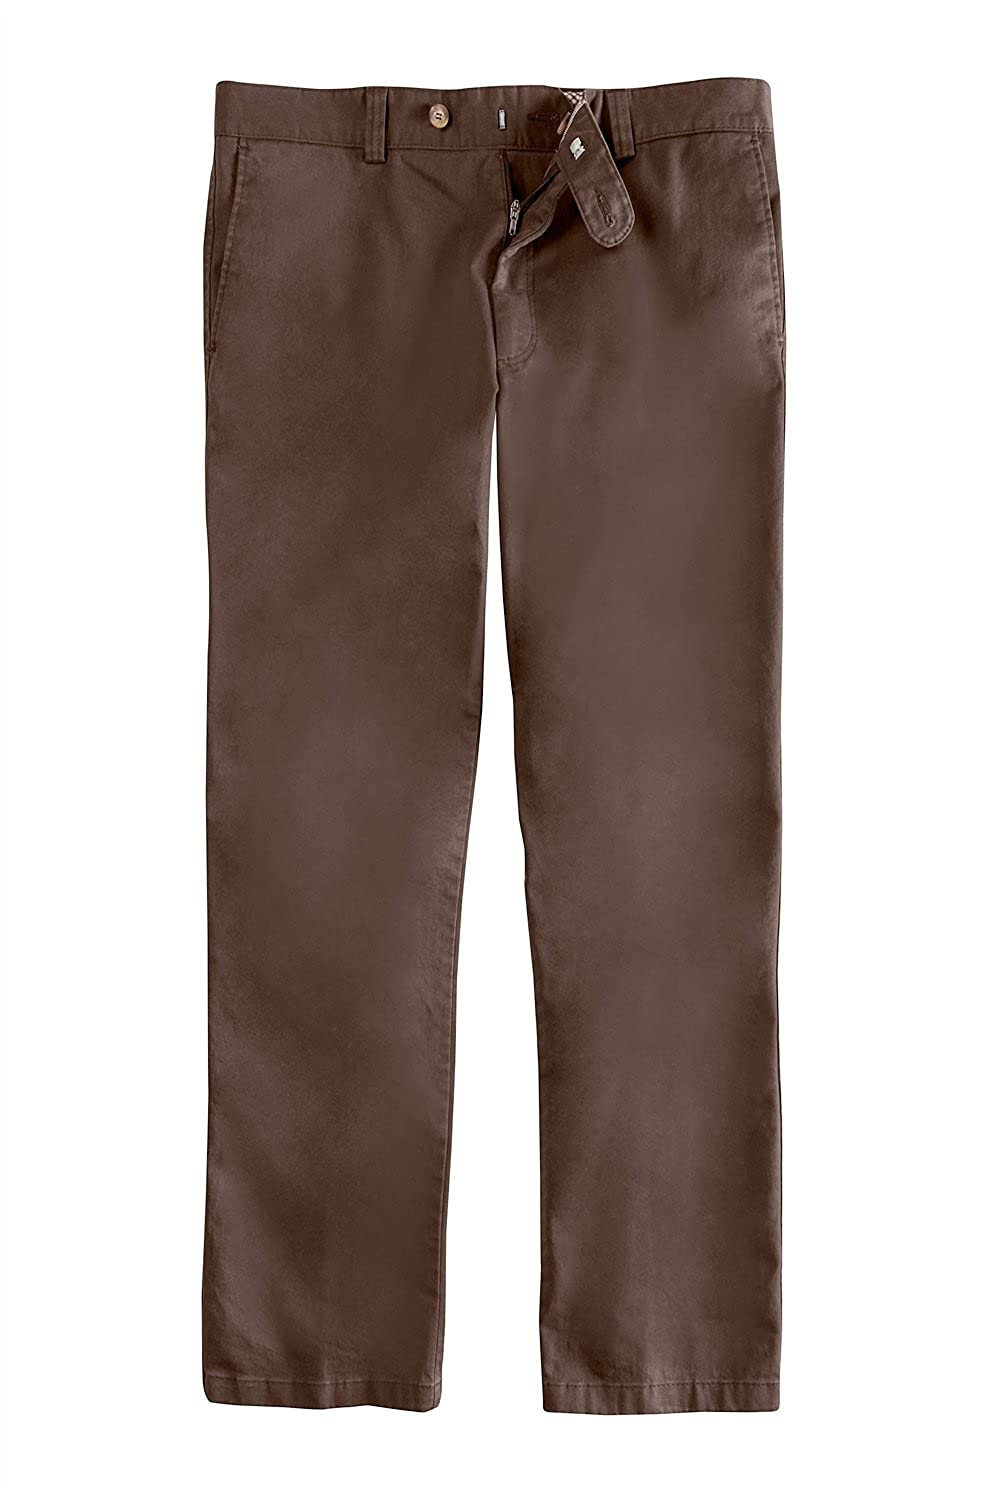 JP1880 Big & Tall Chino Trousers sand 26 694691 22-26